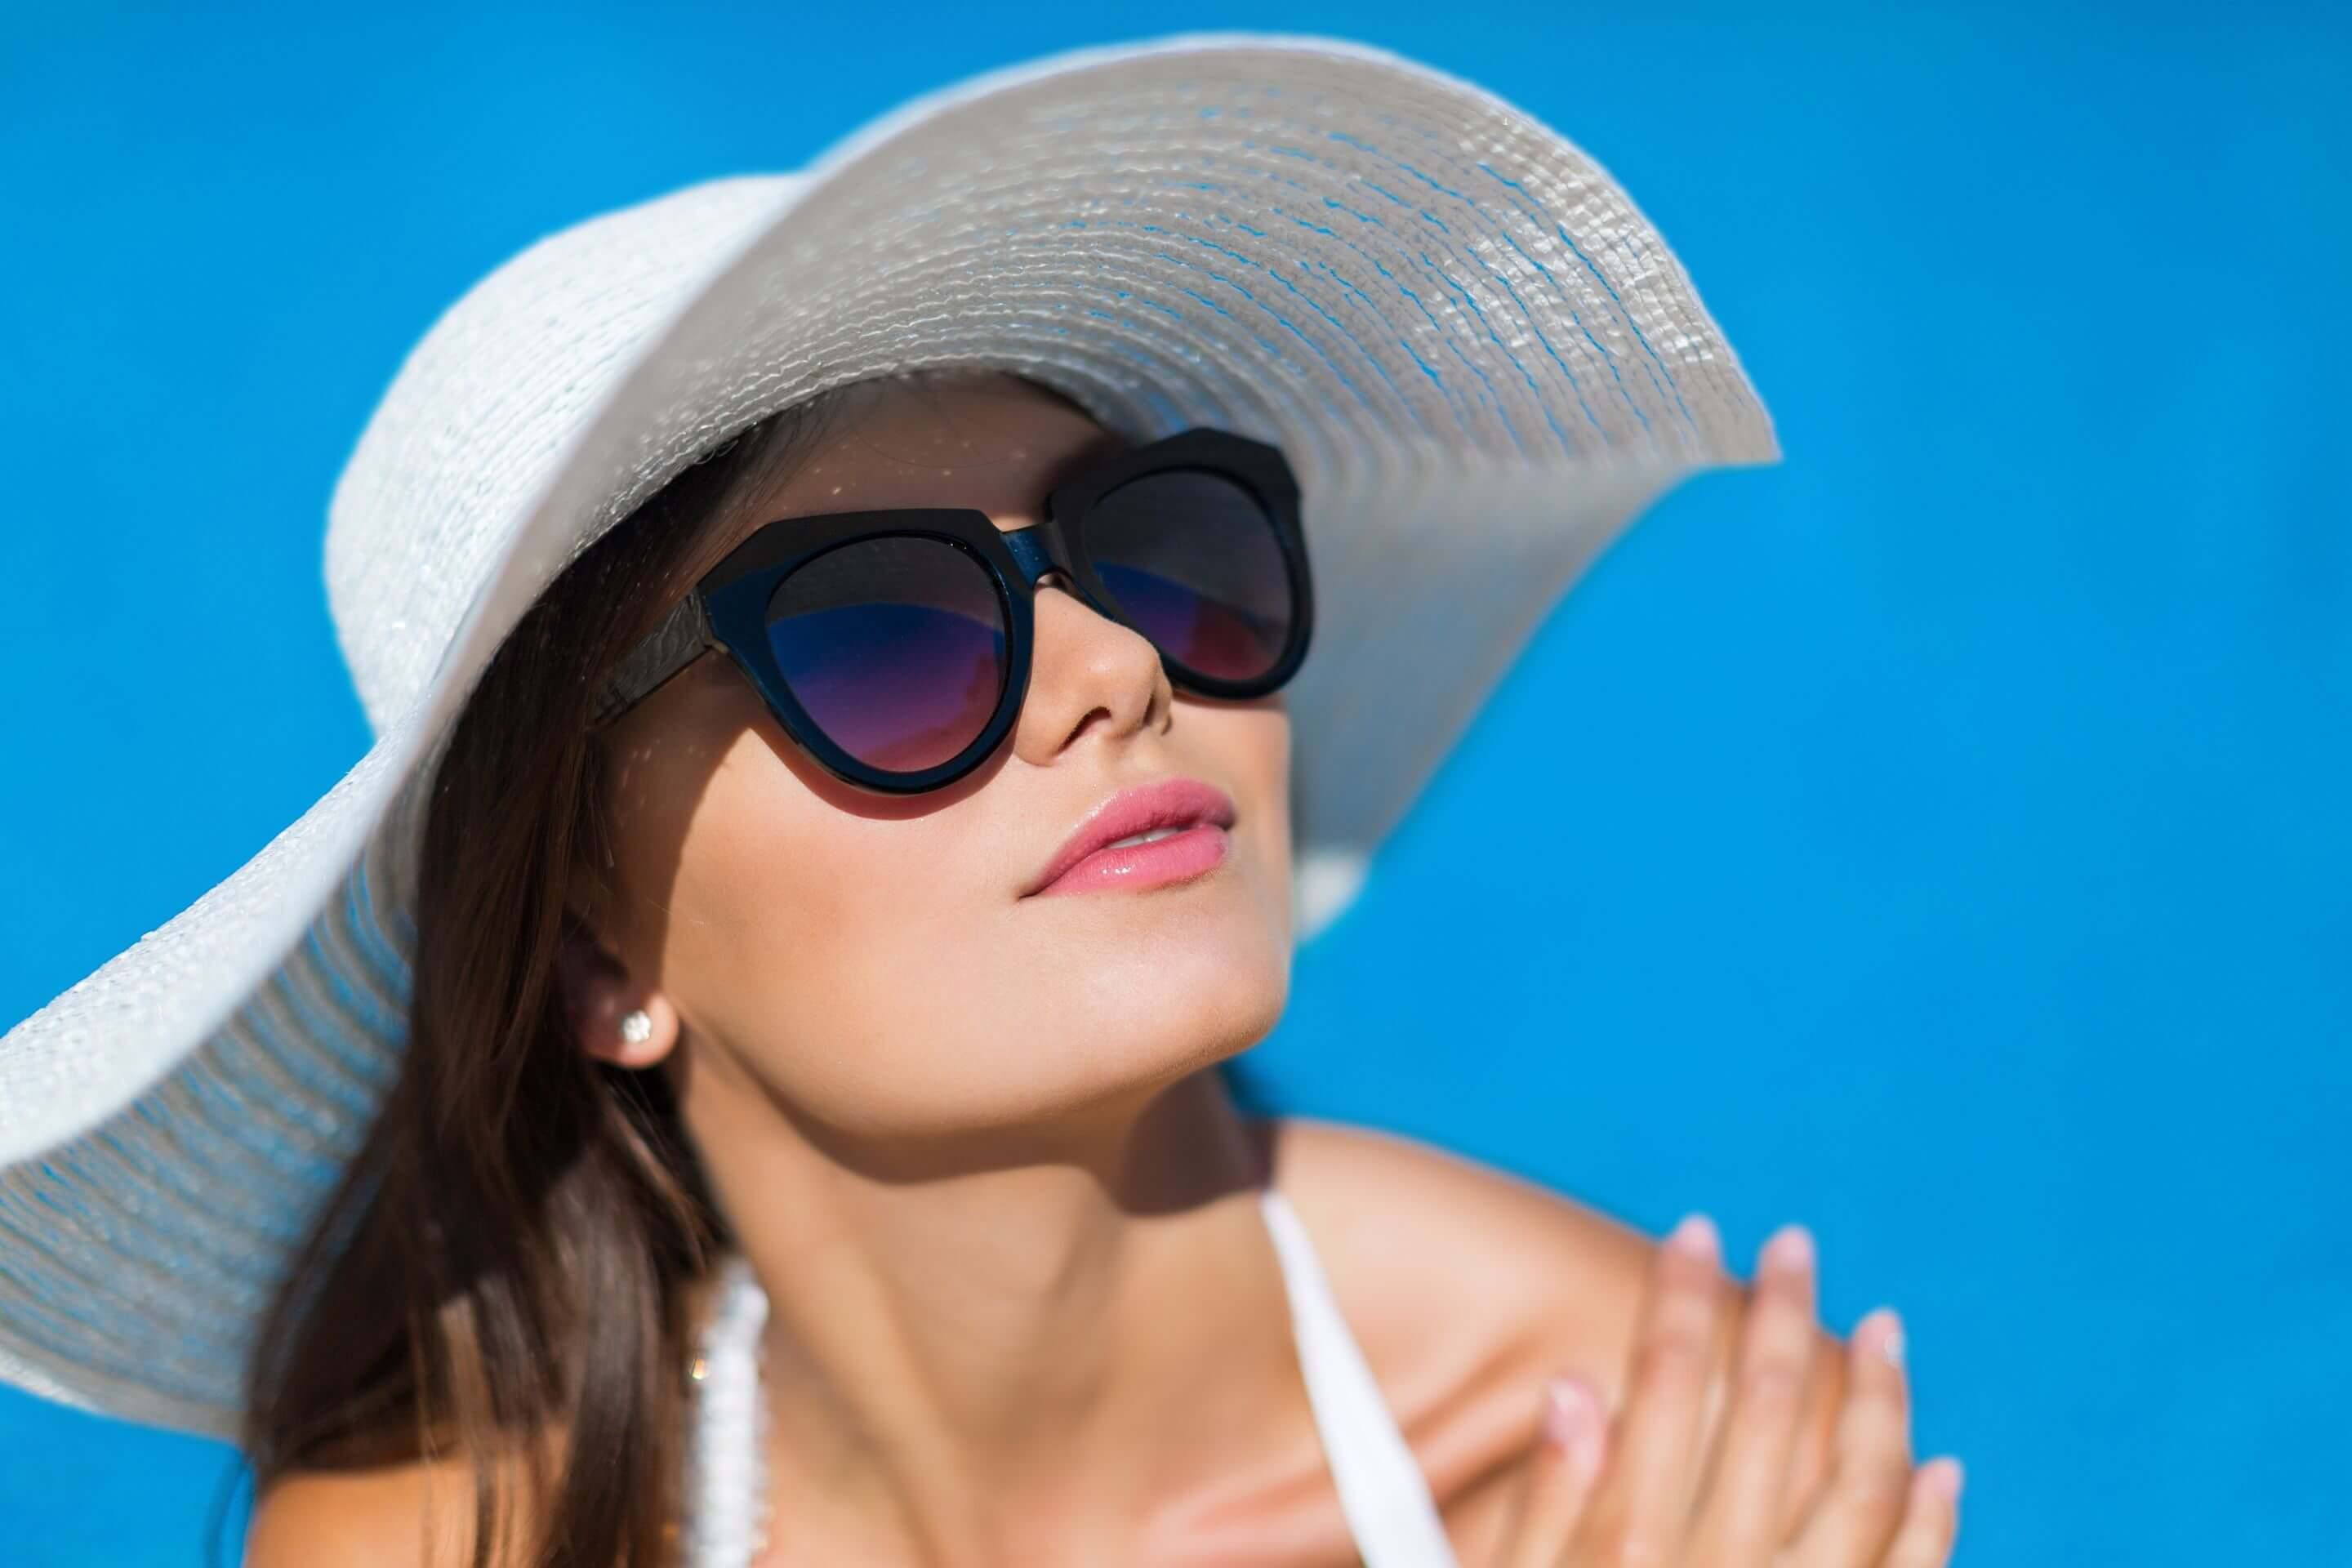 woman wearing sunglasses and hat SU